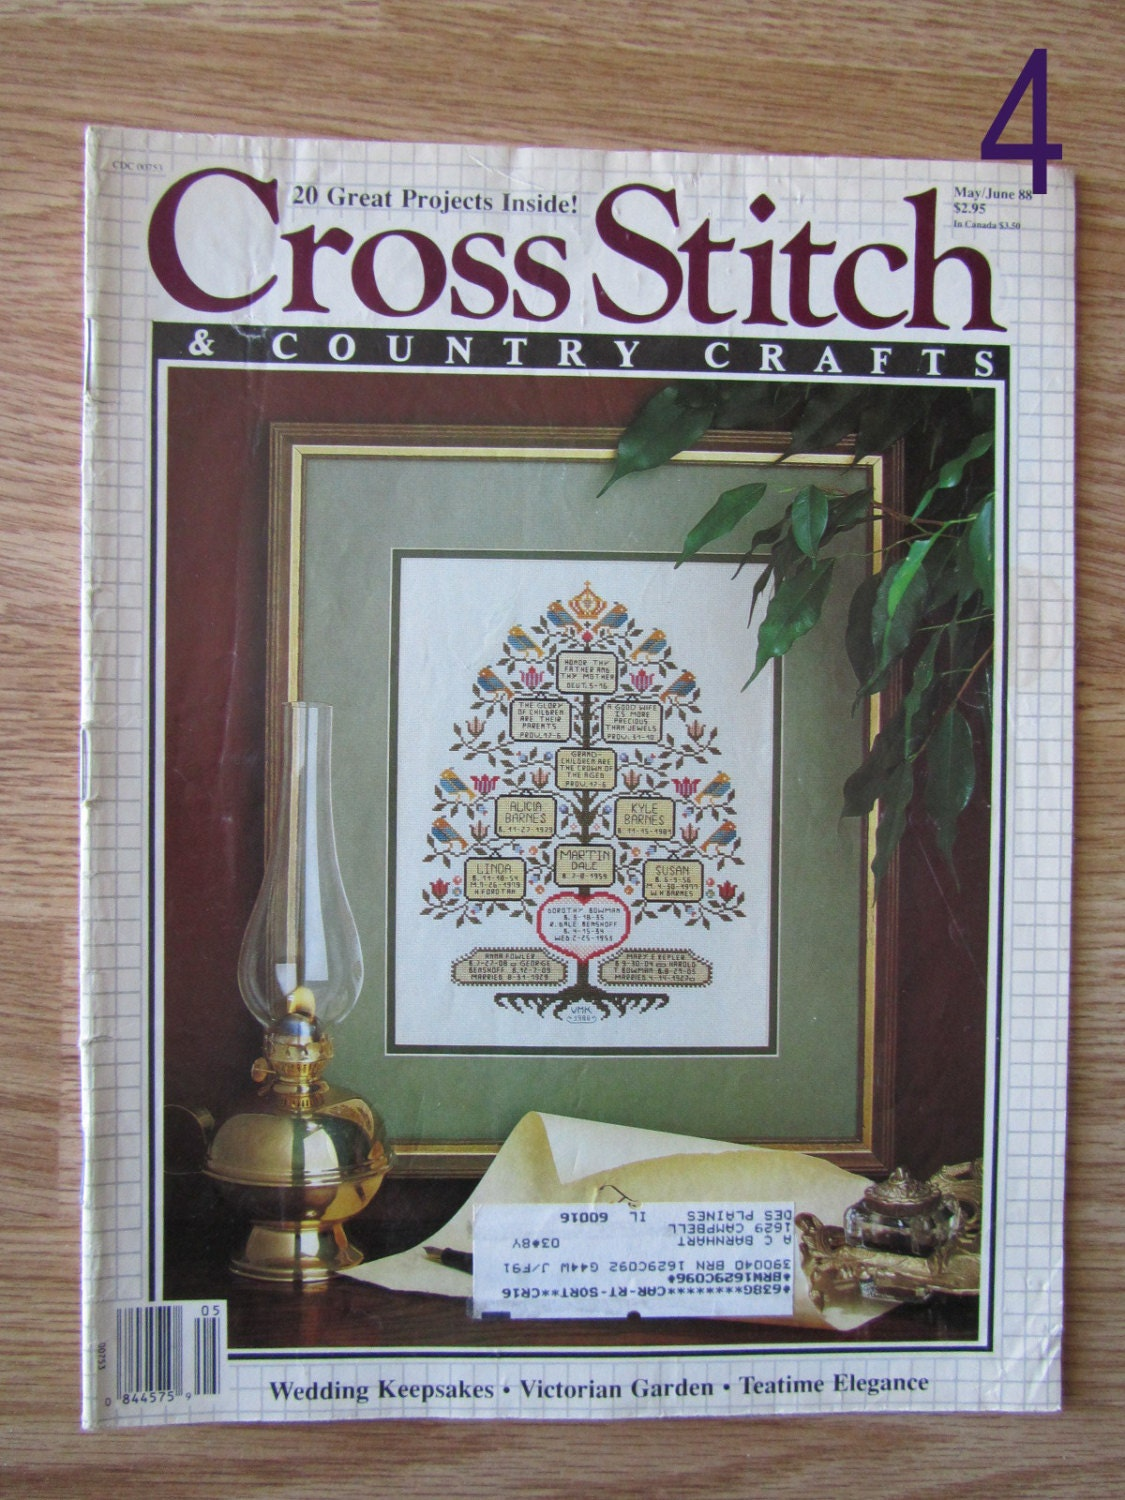 Cross stitch country crafts magazine back issues -  5 00